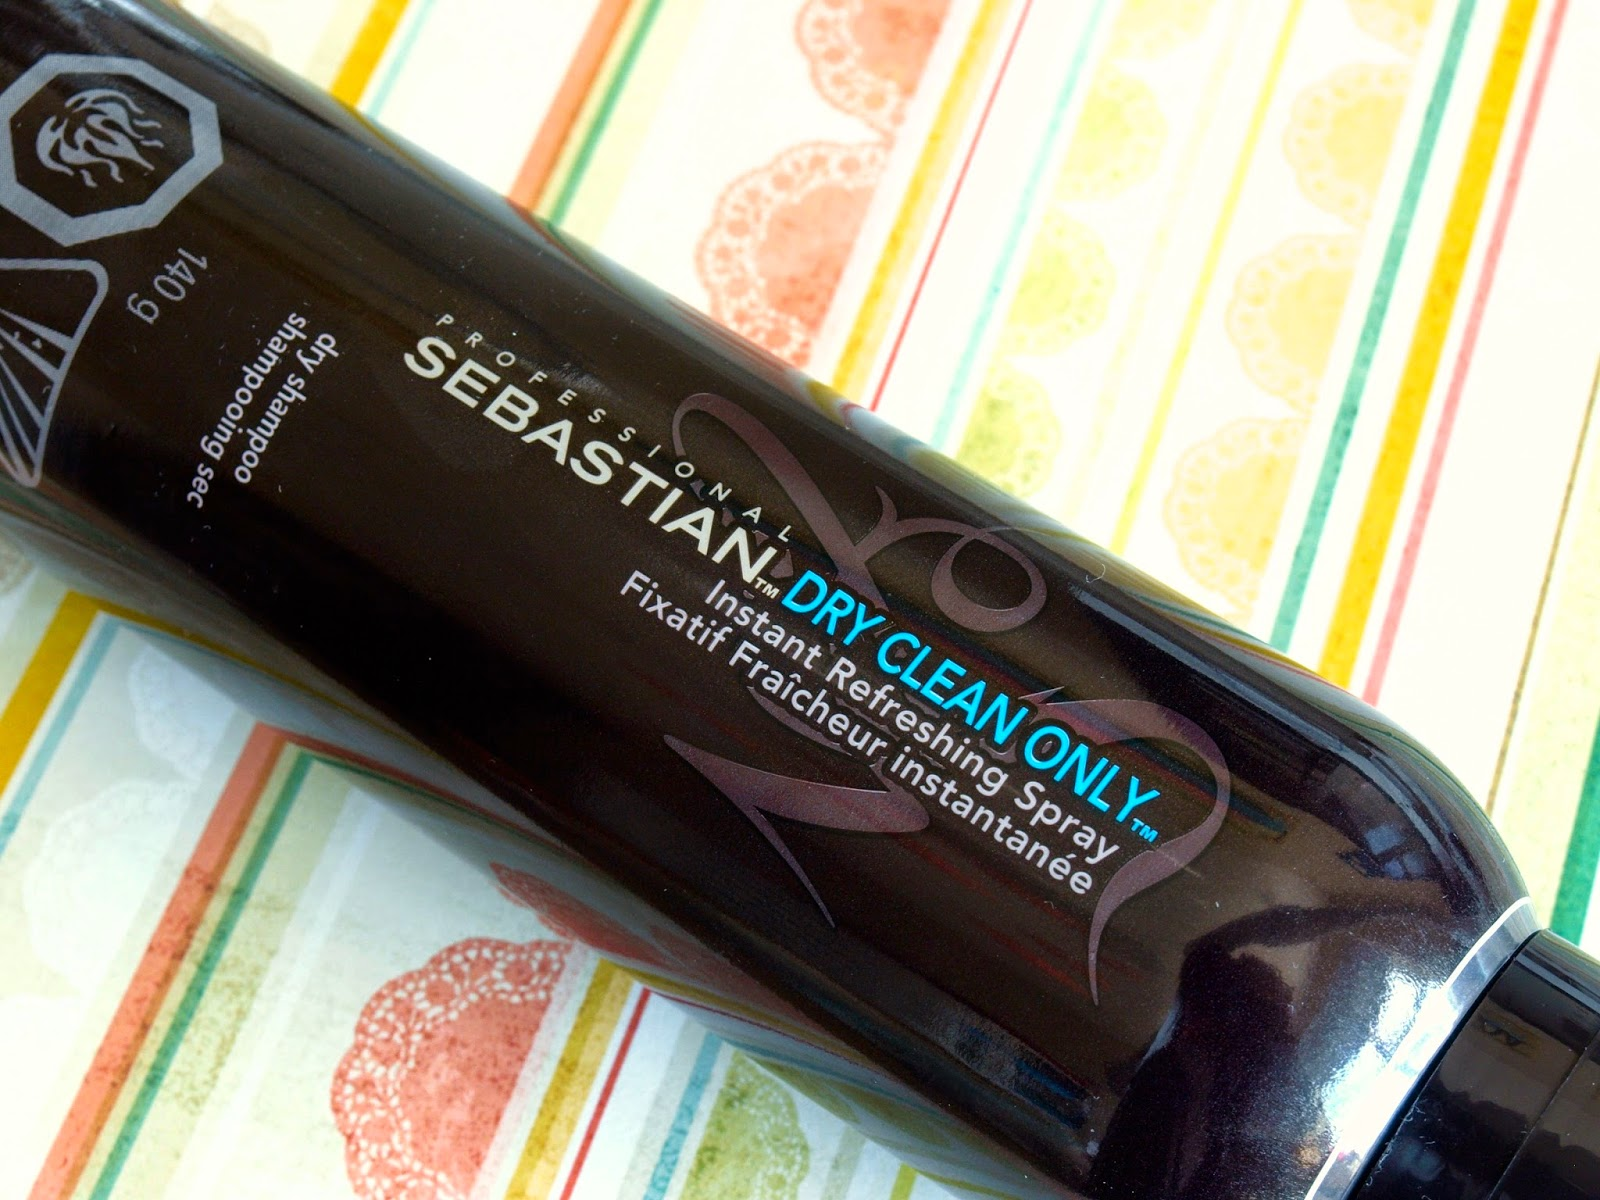 Sebastian Dry Clean Only Instant Refreshing Spray Dry Shampoo: Review